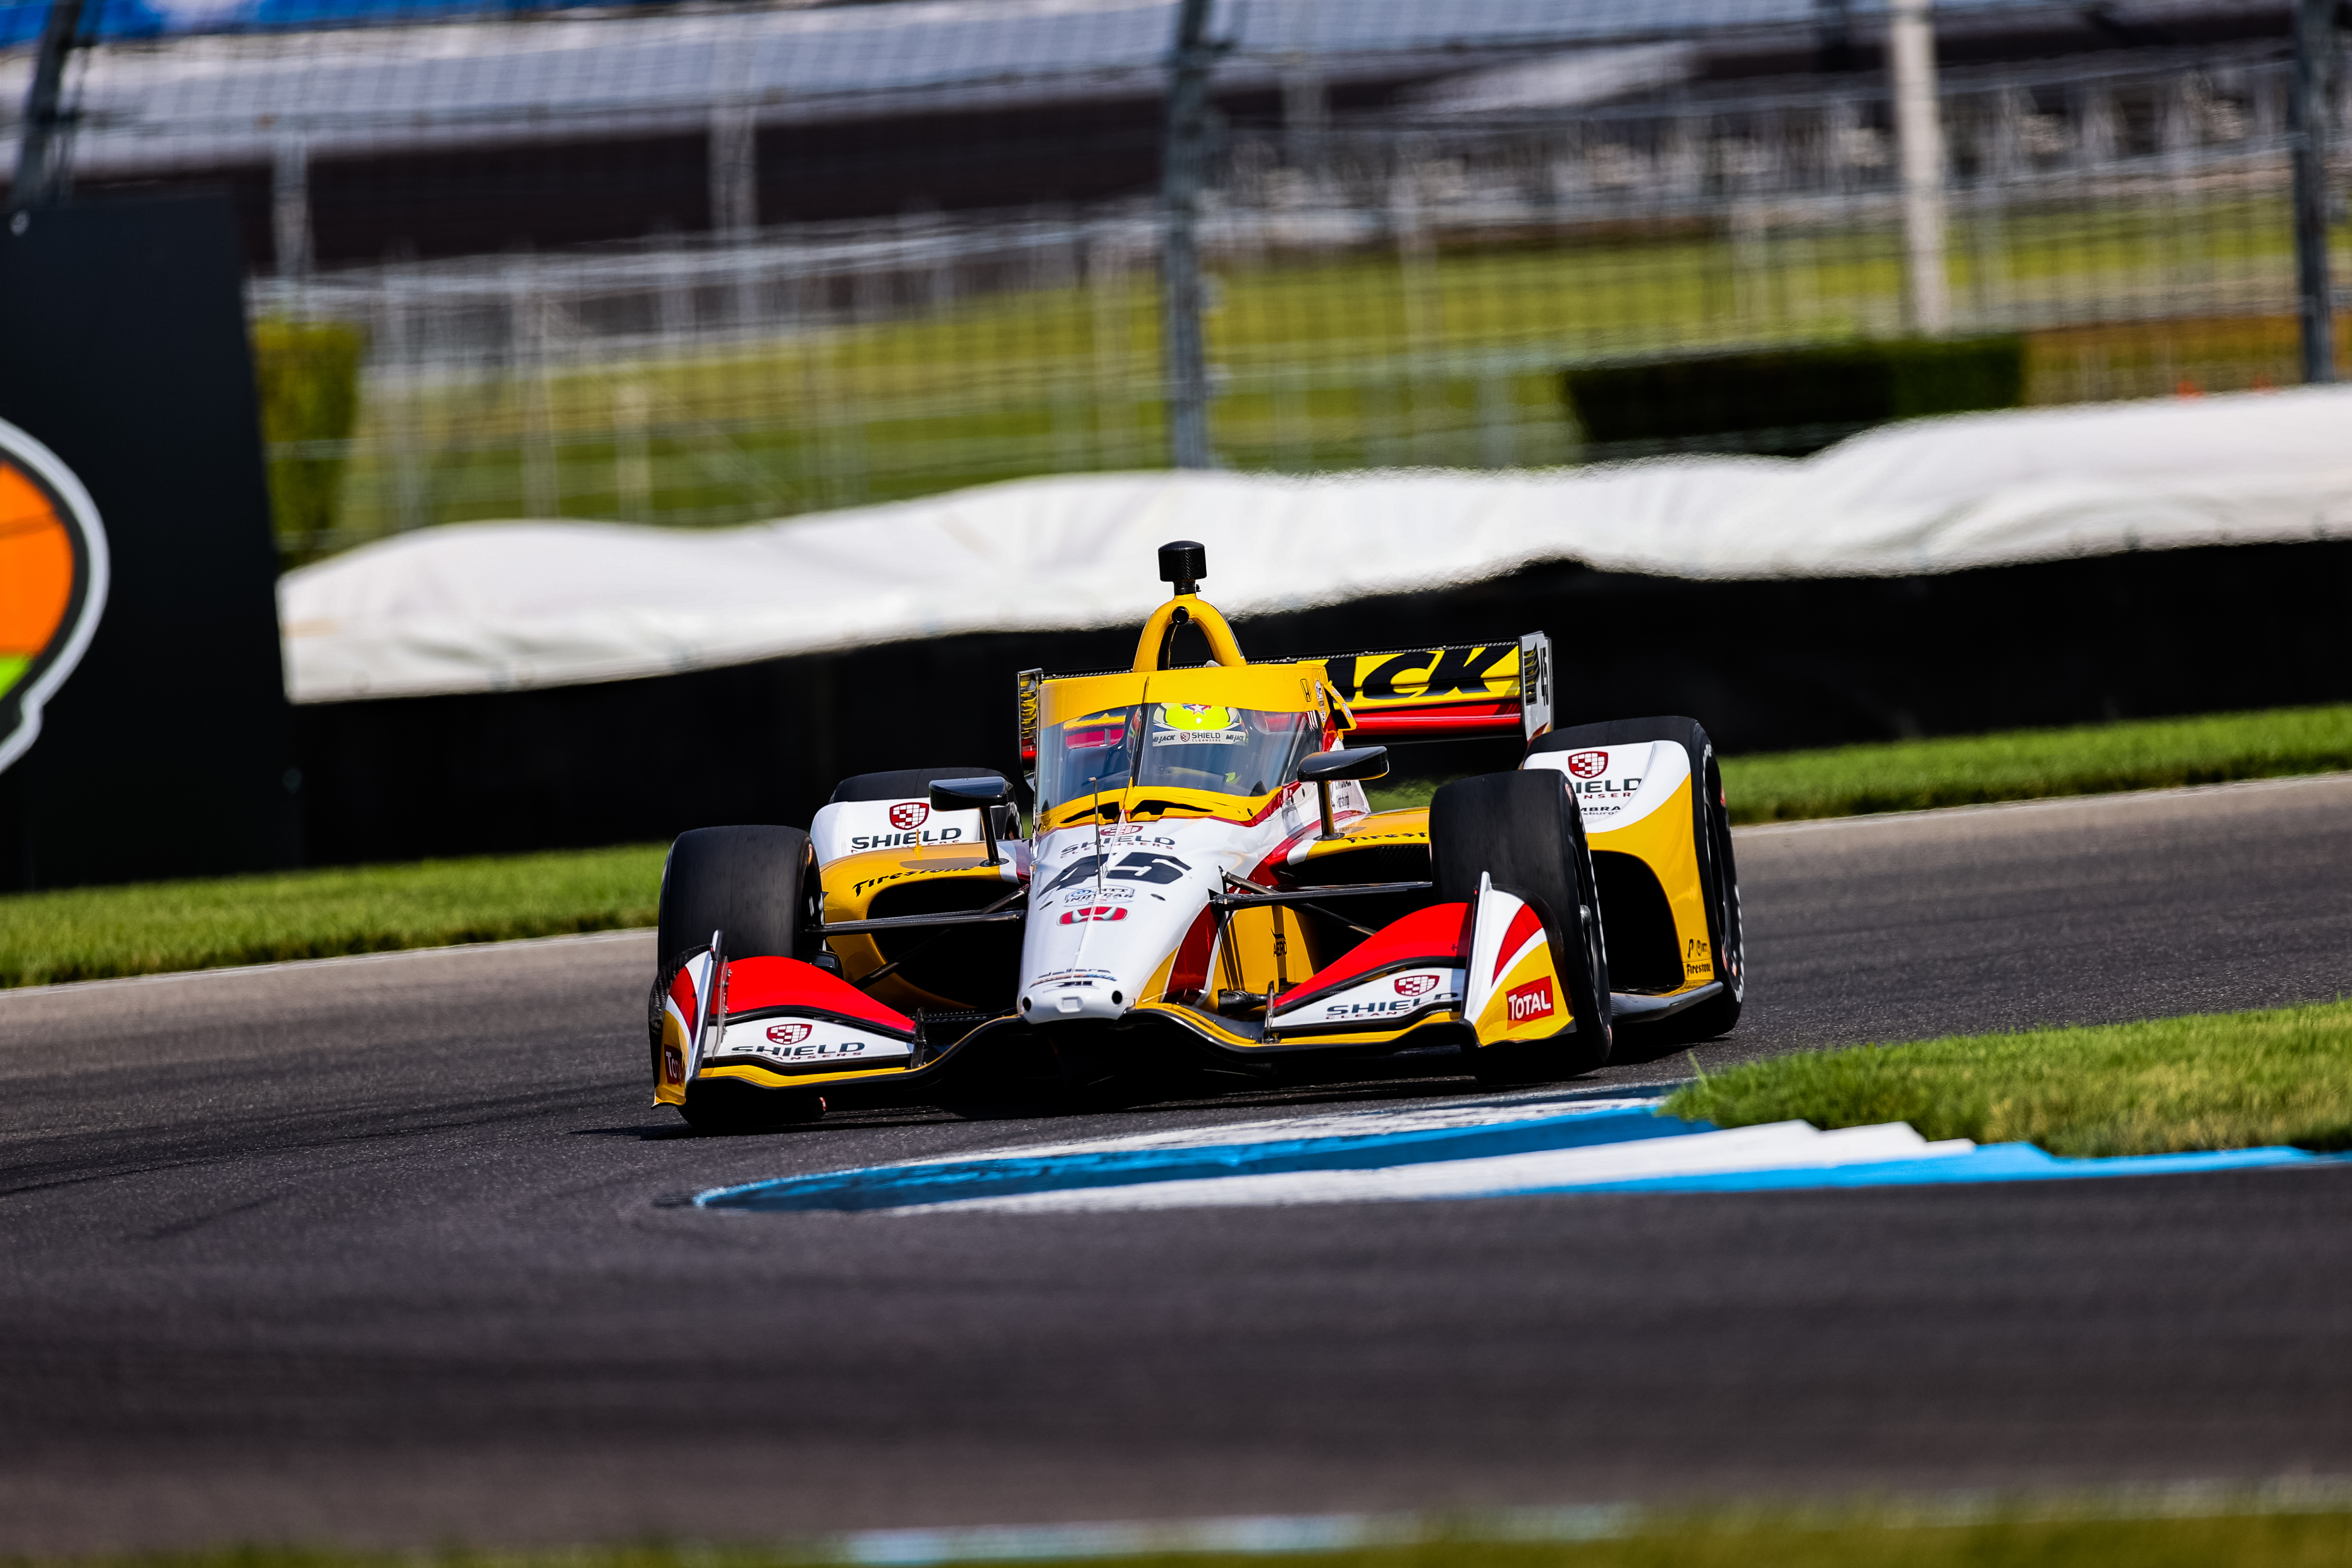 Spencer Pigot, Rahal Letterman Lanigan Racing with Citrone/Buhl Autosport